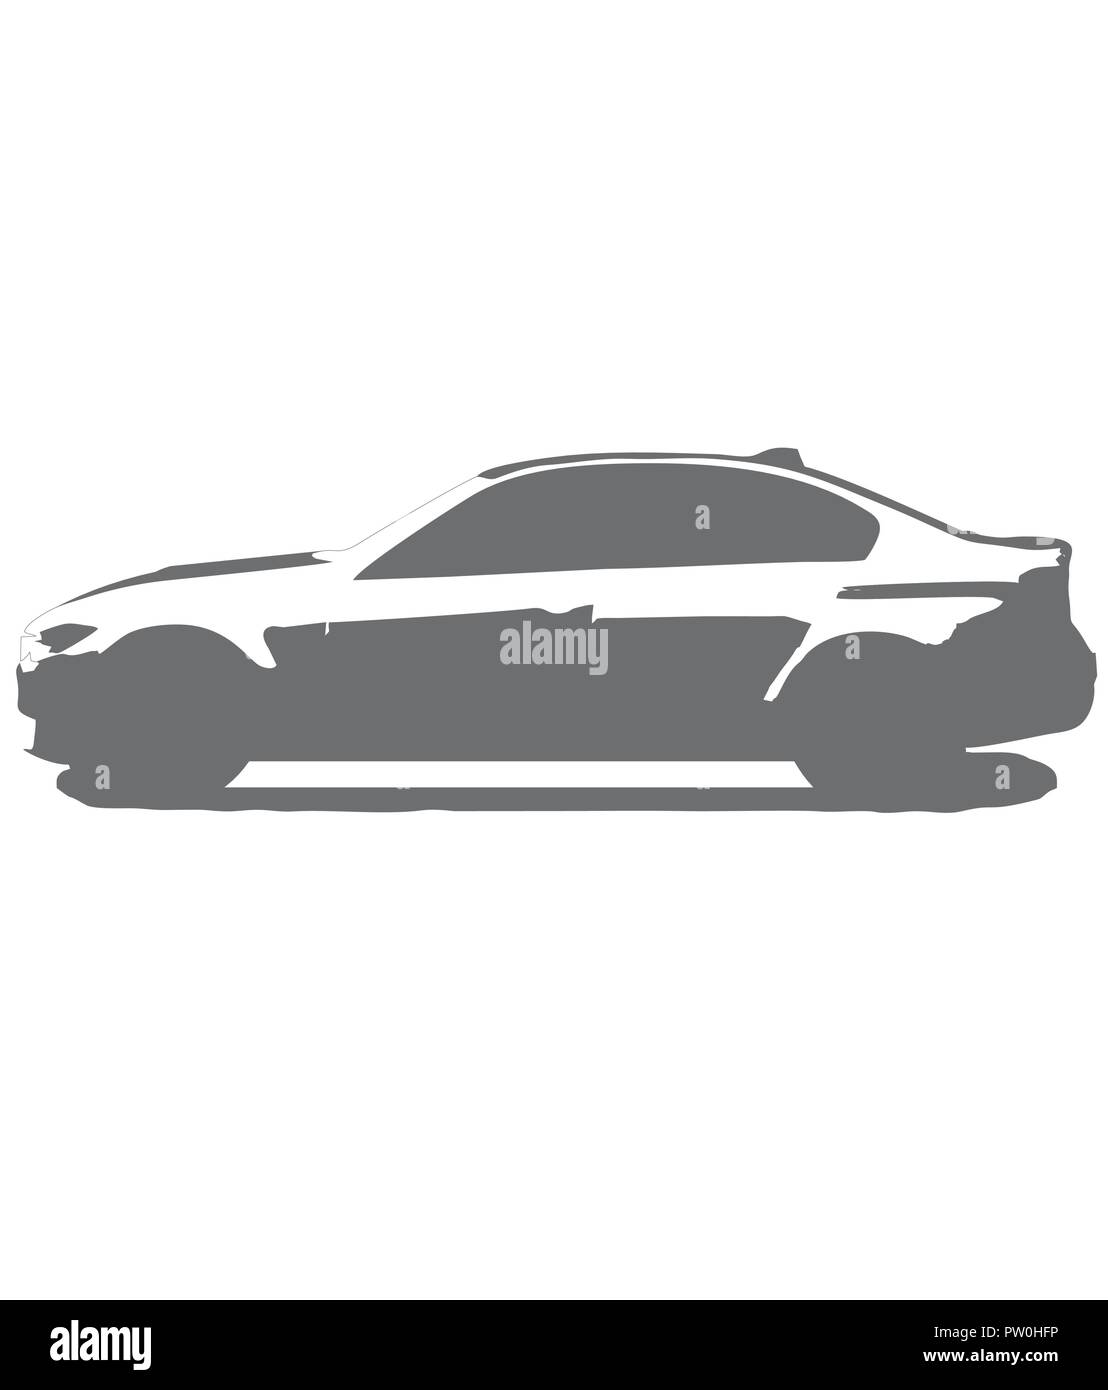 Bmw m3 logo, isolated in black and white vector racecar - Stock Vector